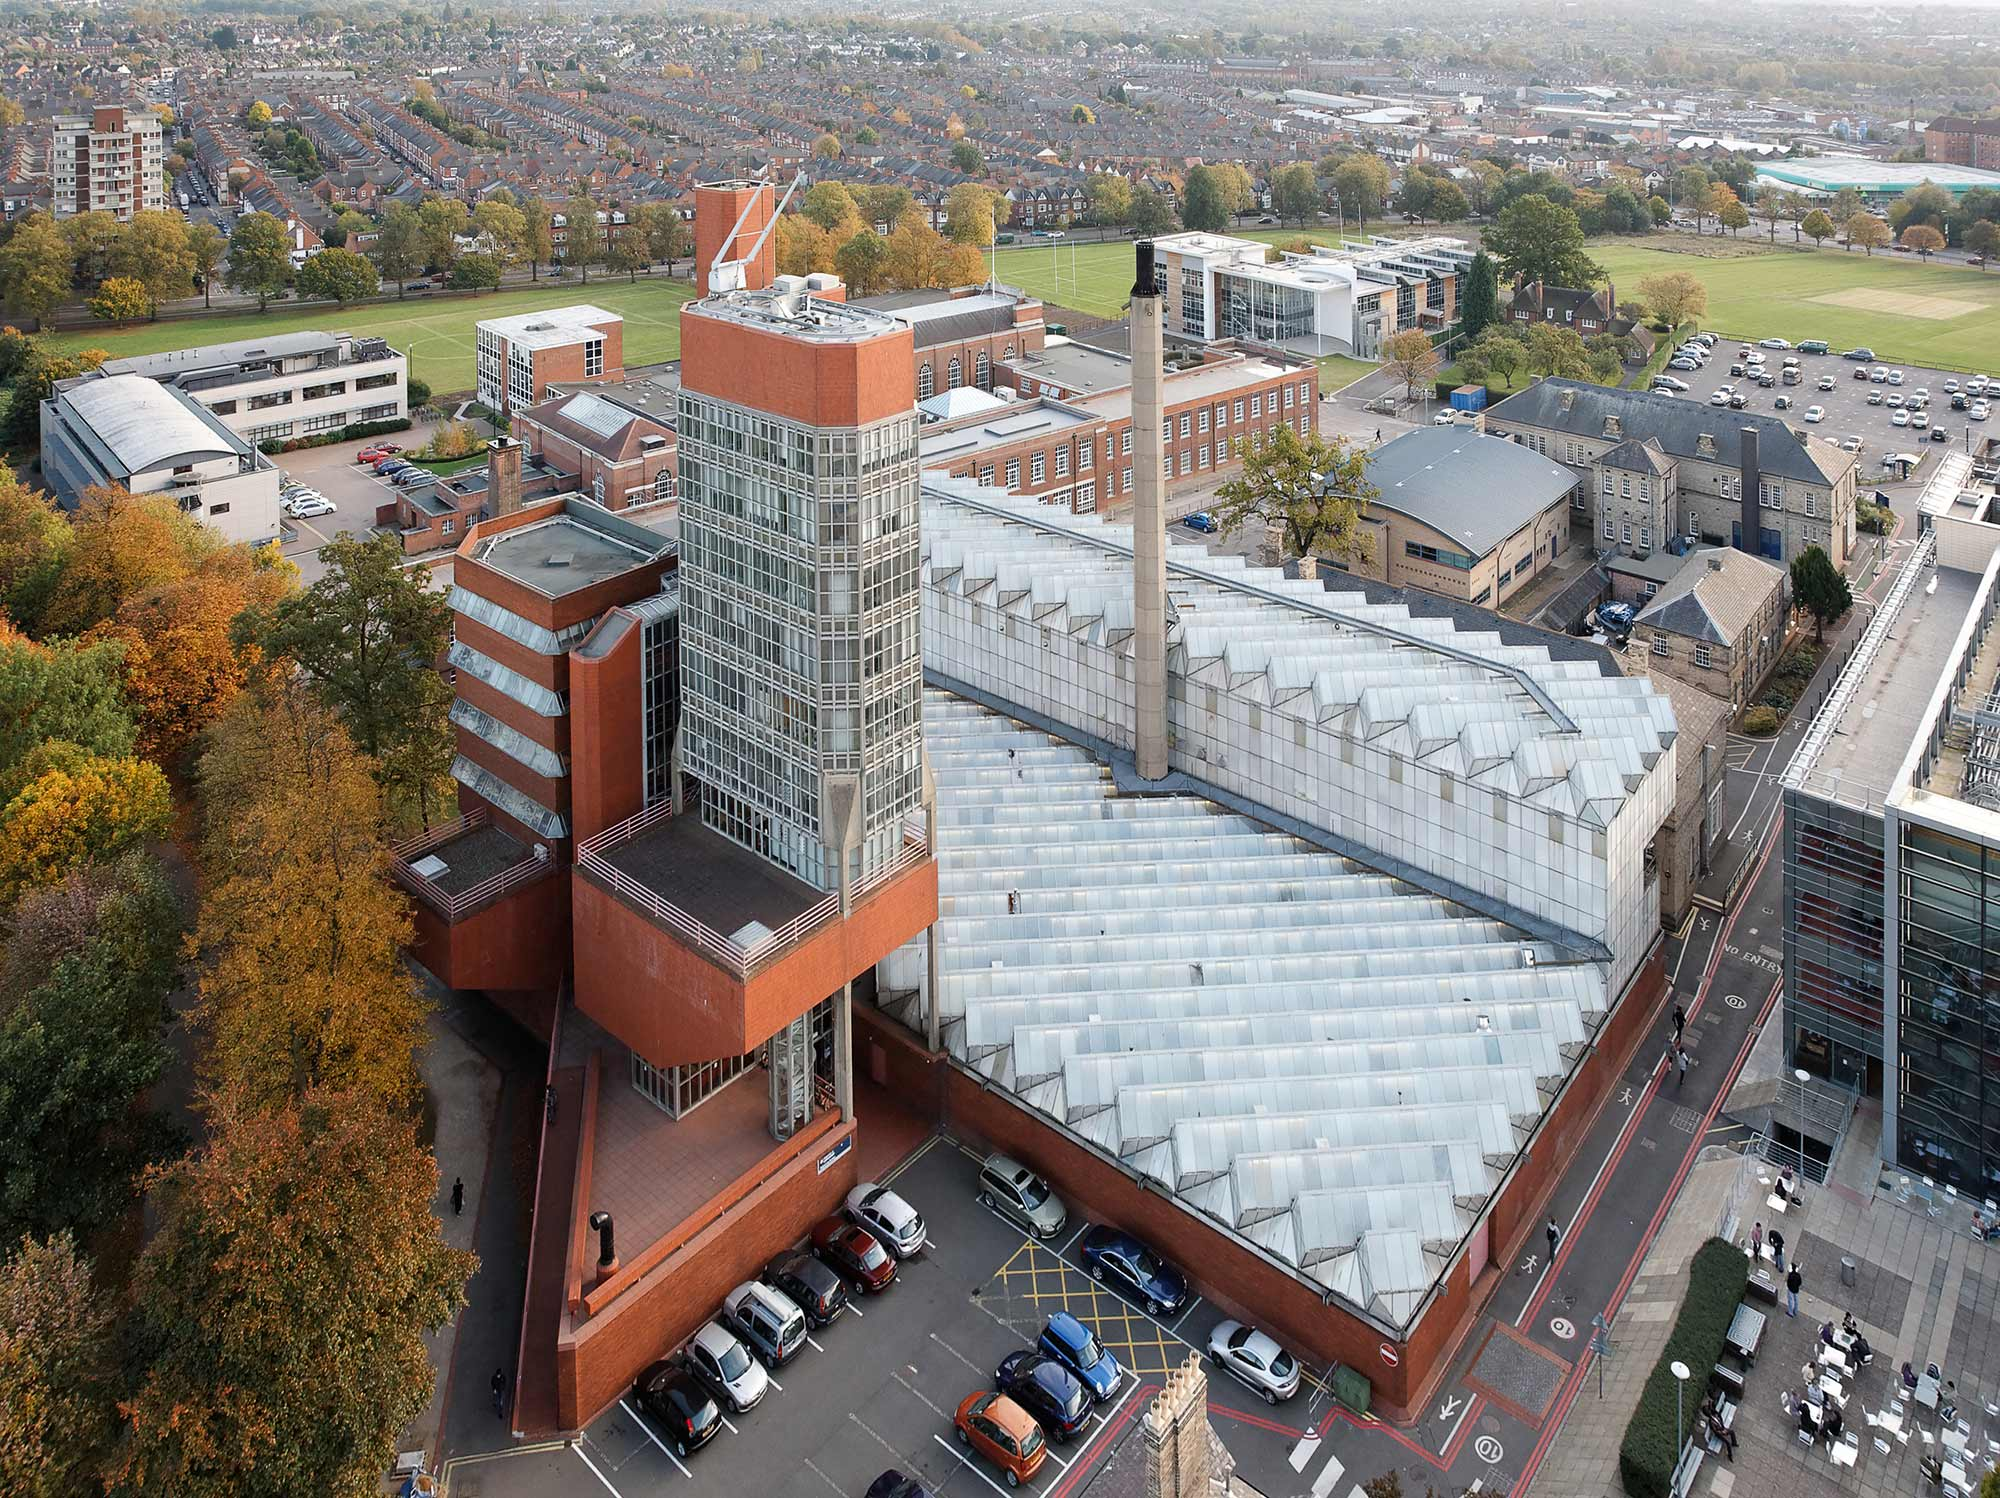 An aerial view of the building as it looks today - University of Leicester